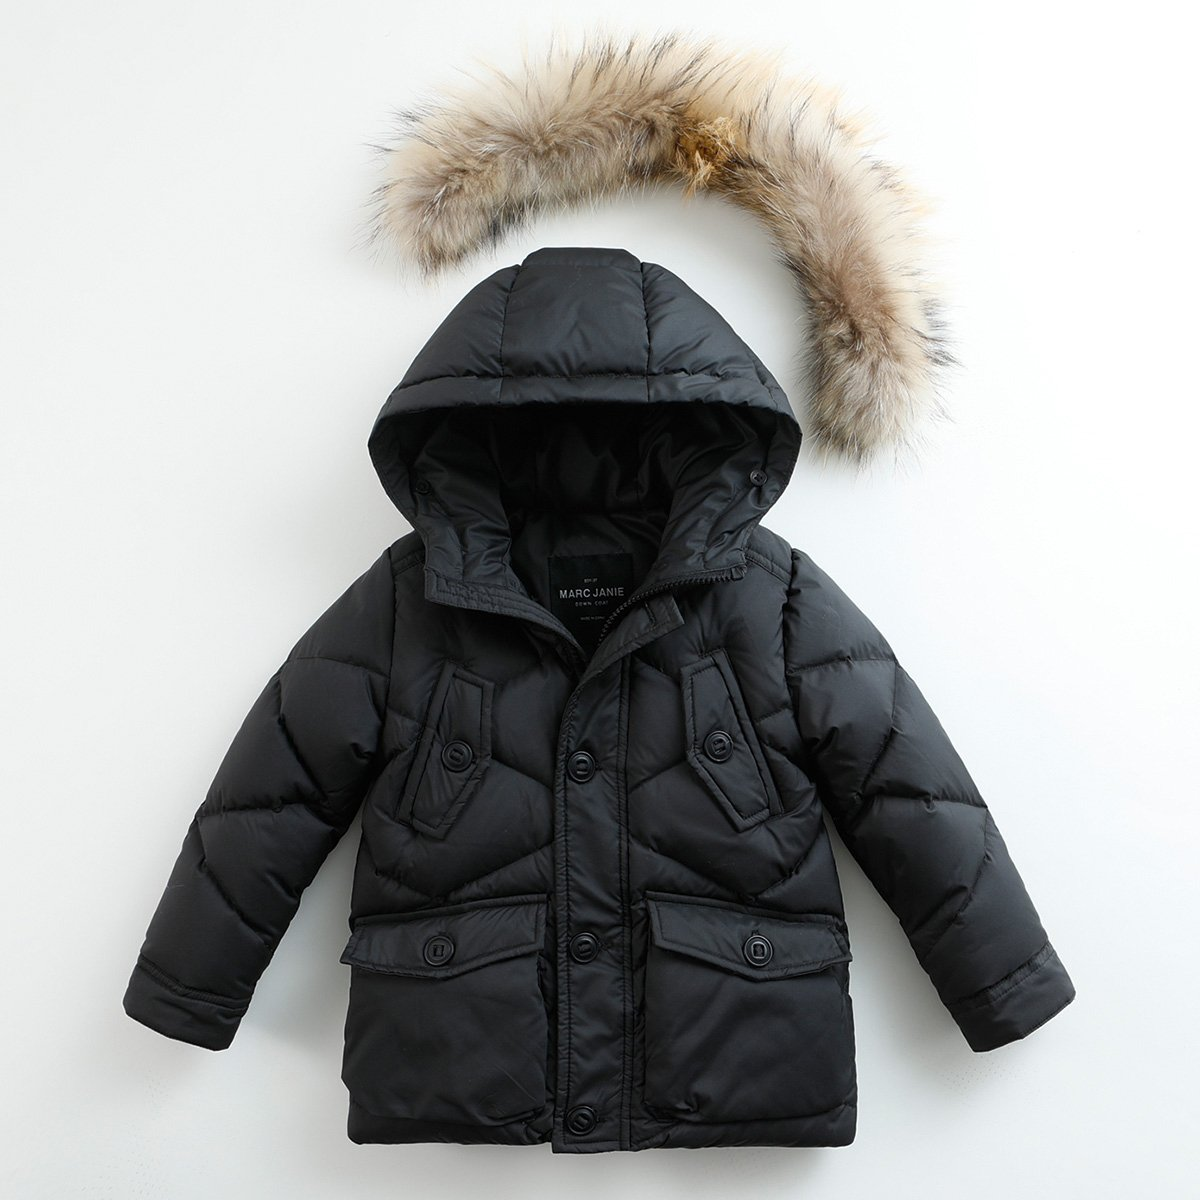 marc janie Baby Boys Kids' Lightweight Down Jacket With Raccoon Fur Collar Hood Puffer Winter Coat Black 4T by marc janie (Image #3)